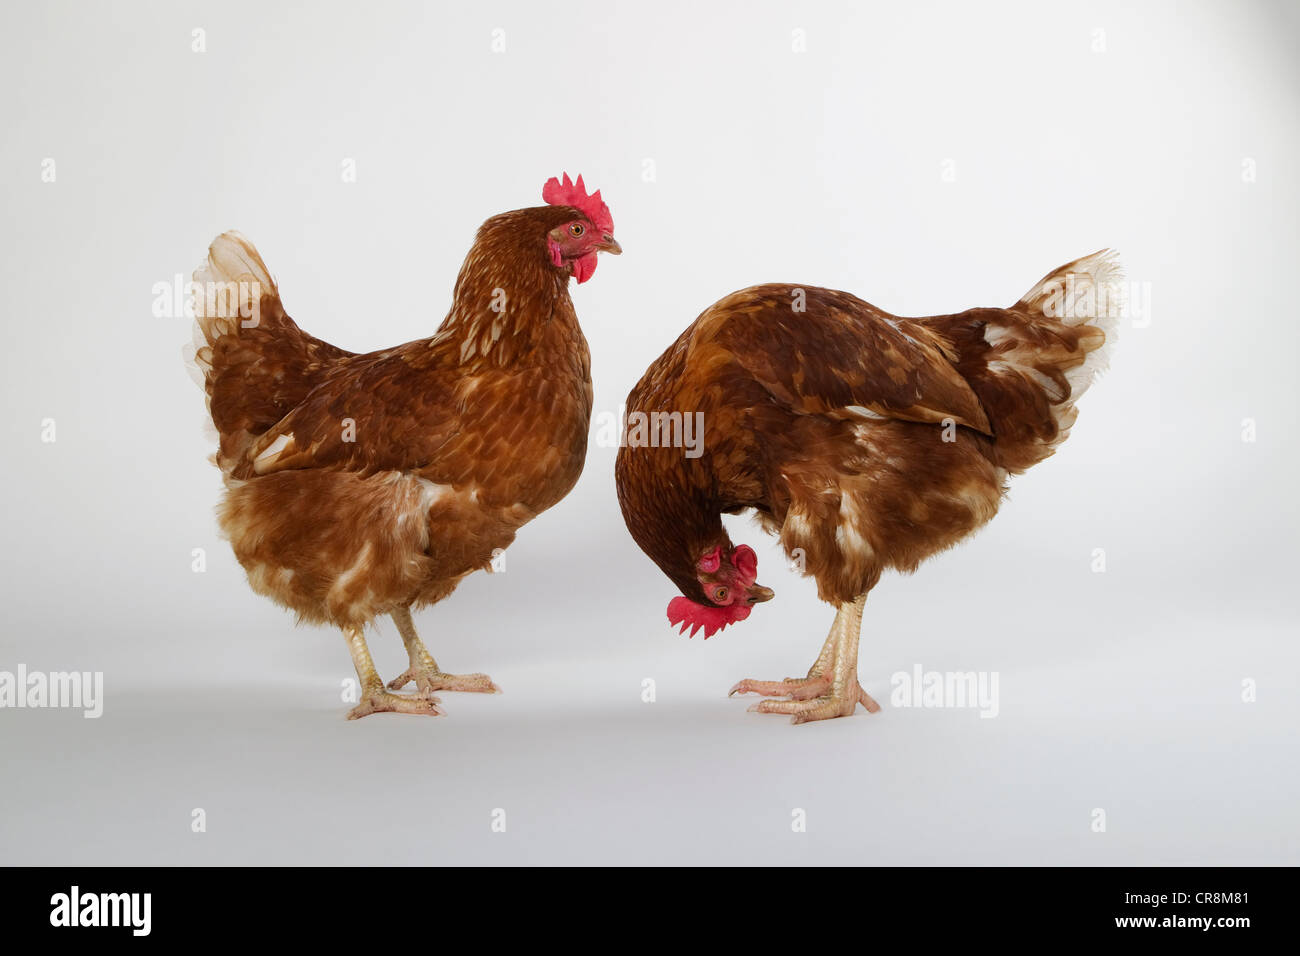 Two hens, studio shot - Stock Image